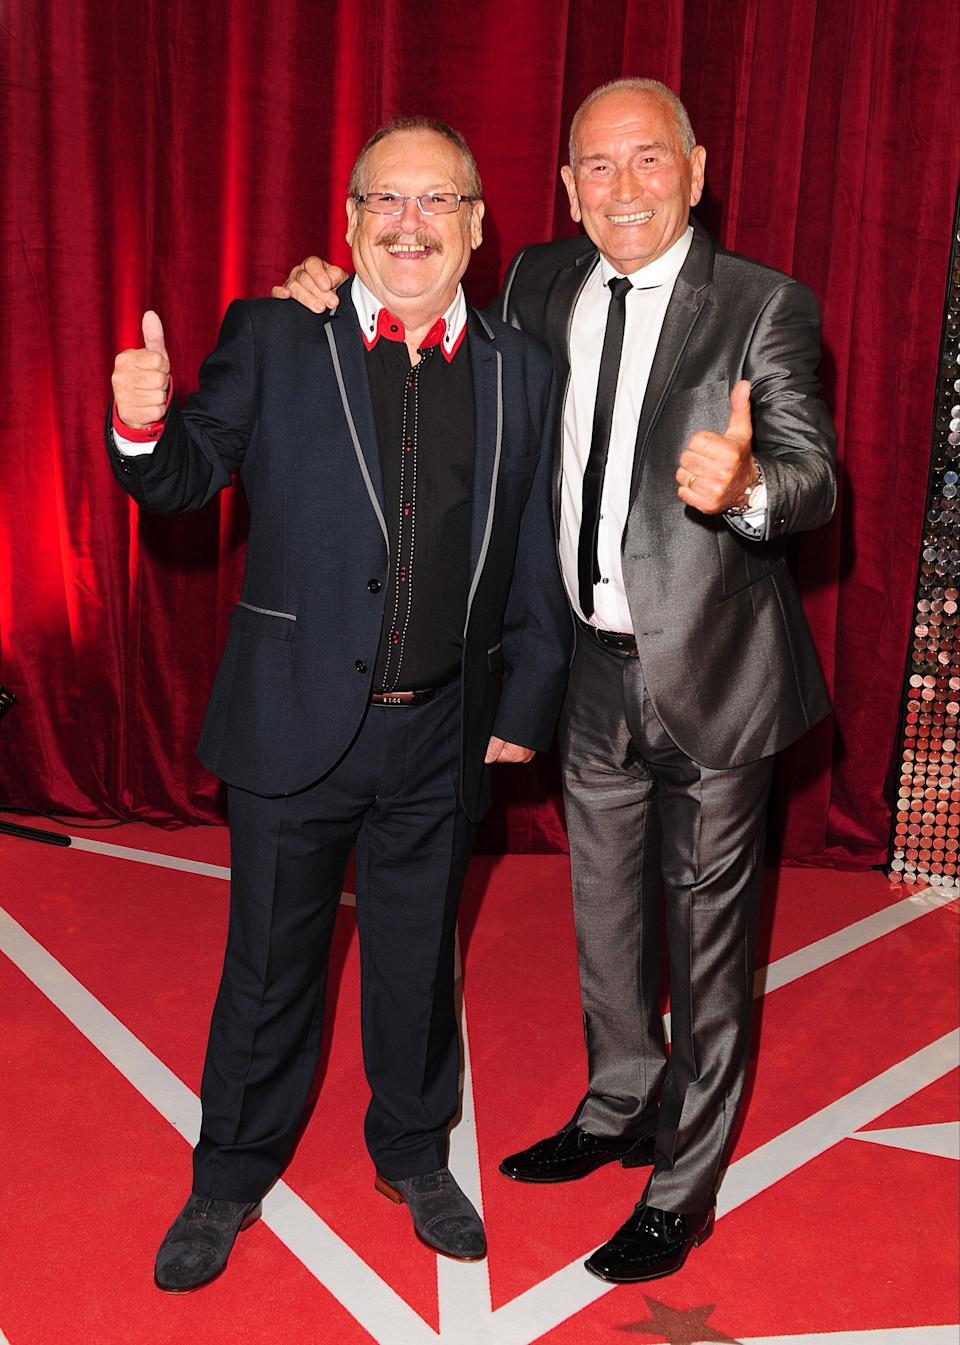 Cannon and Ball pictured in 2013 (Photo: PA)